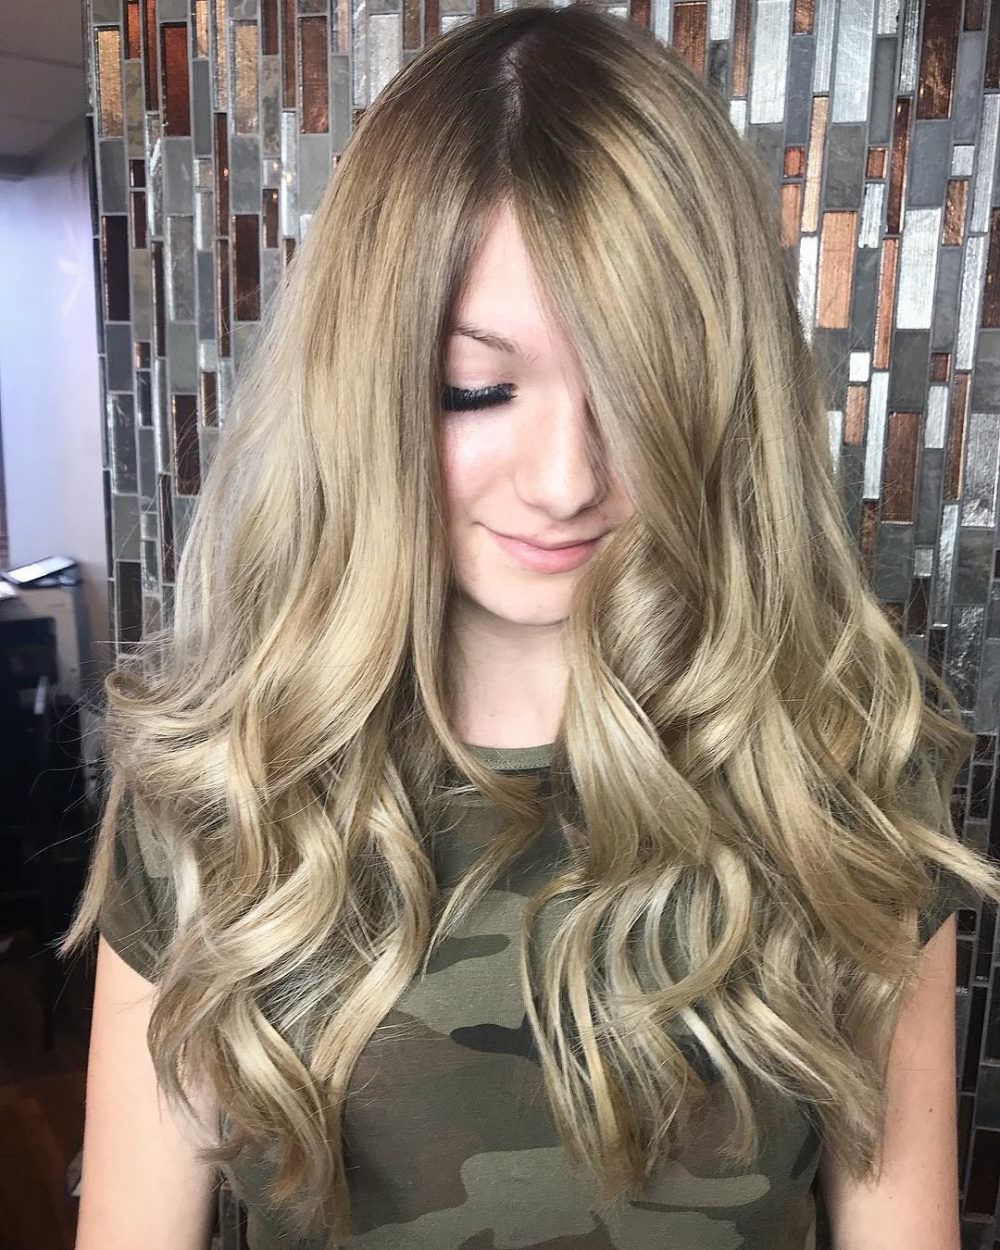 24 Long Wavy Hair Ideas That Are Freaking Hot In 2019 Pertaining To Most Up To Date Long Hairstyles With Straight Fringes And Wavy Ends (View 17 of 20)